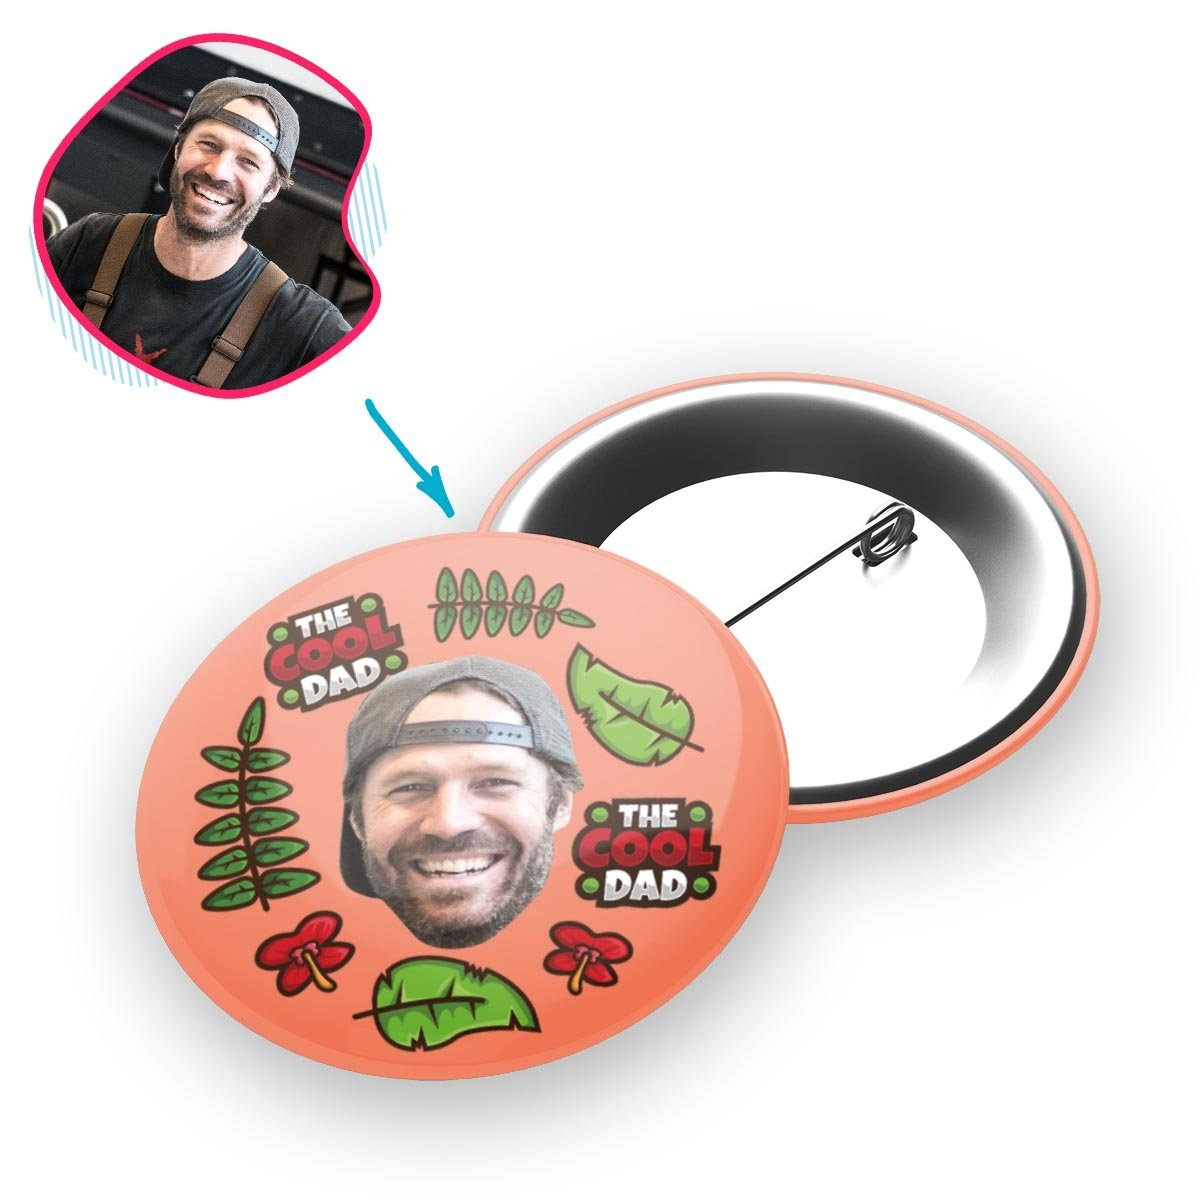 salmon The Cool Dad pin personalized with photo of face printed on it